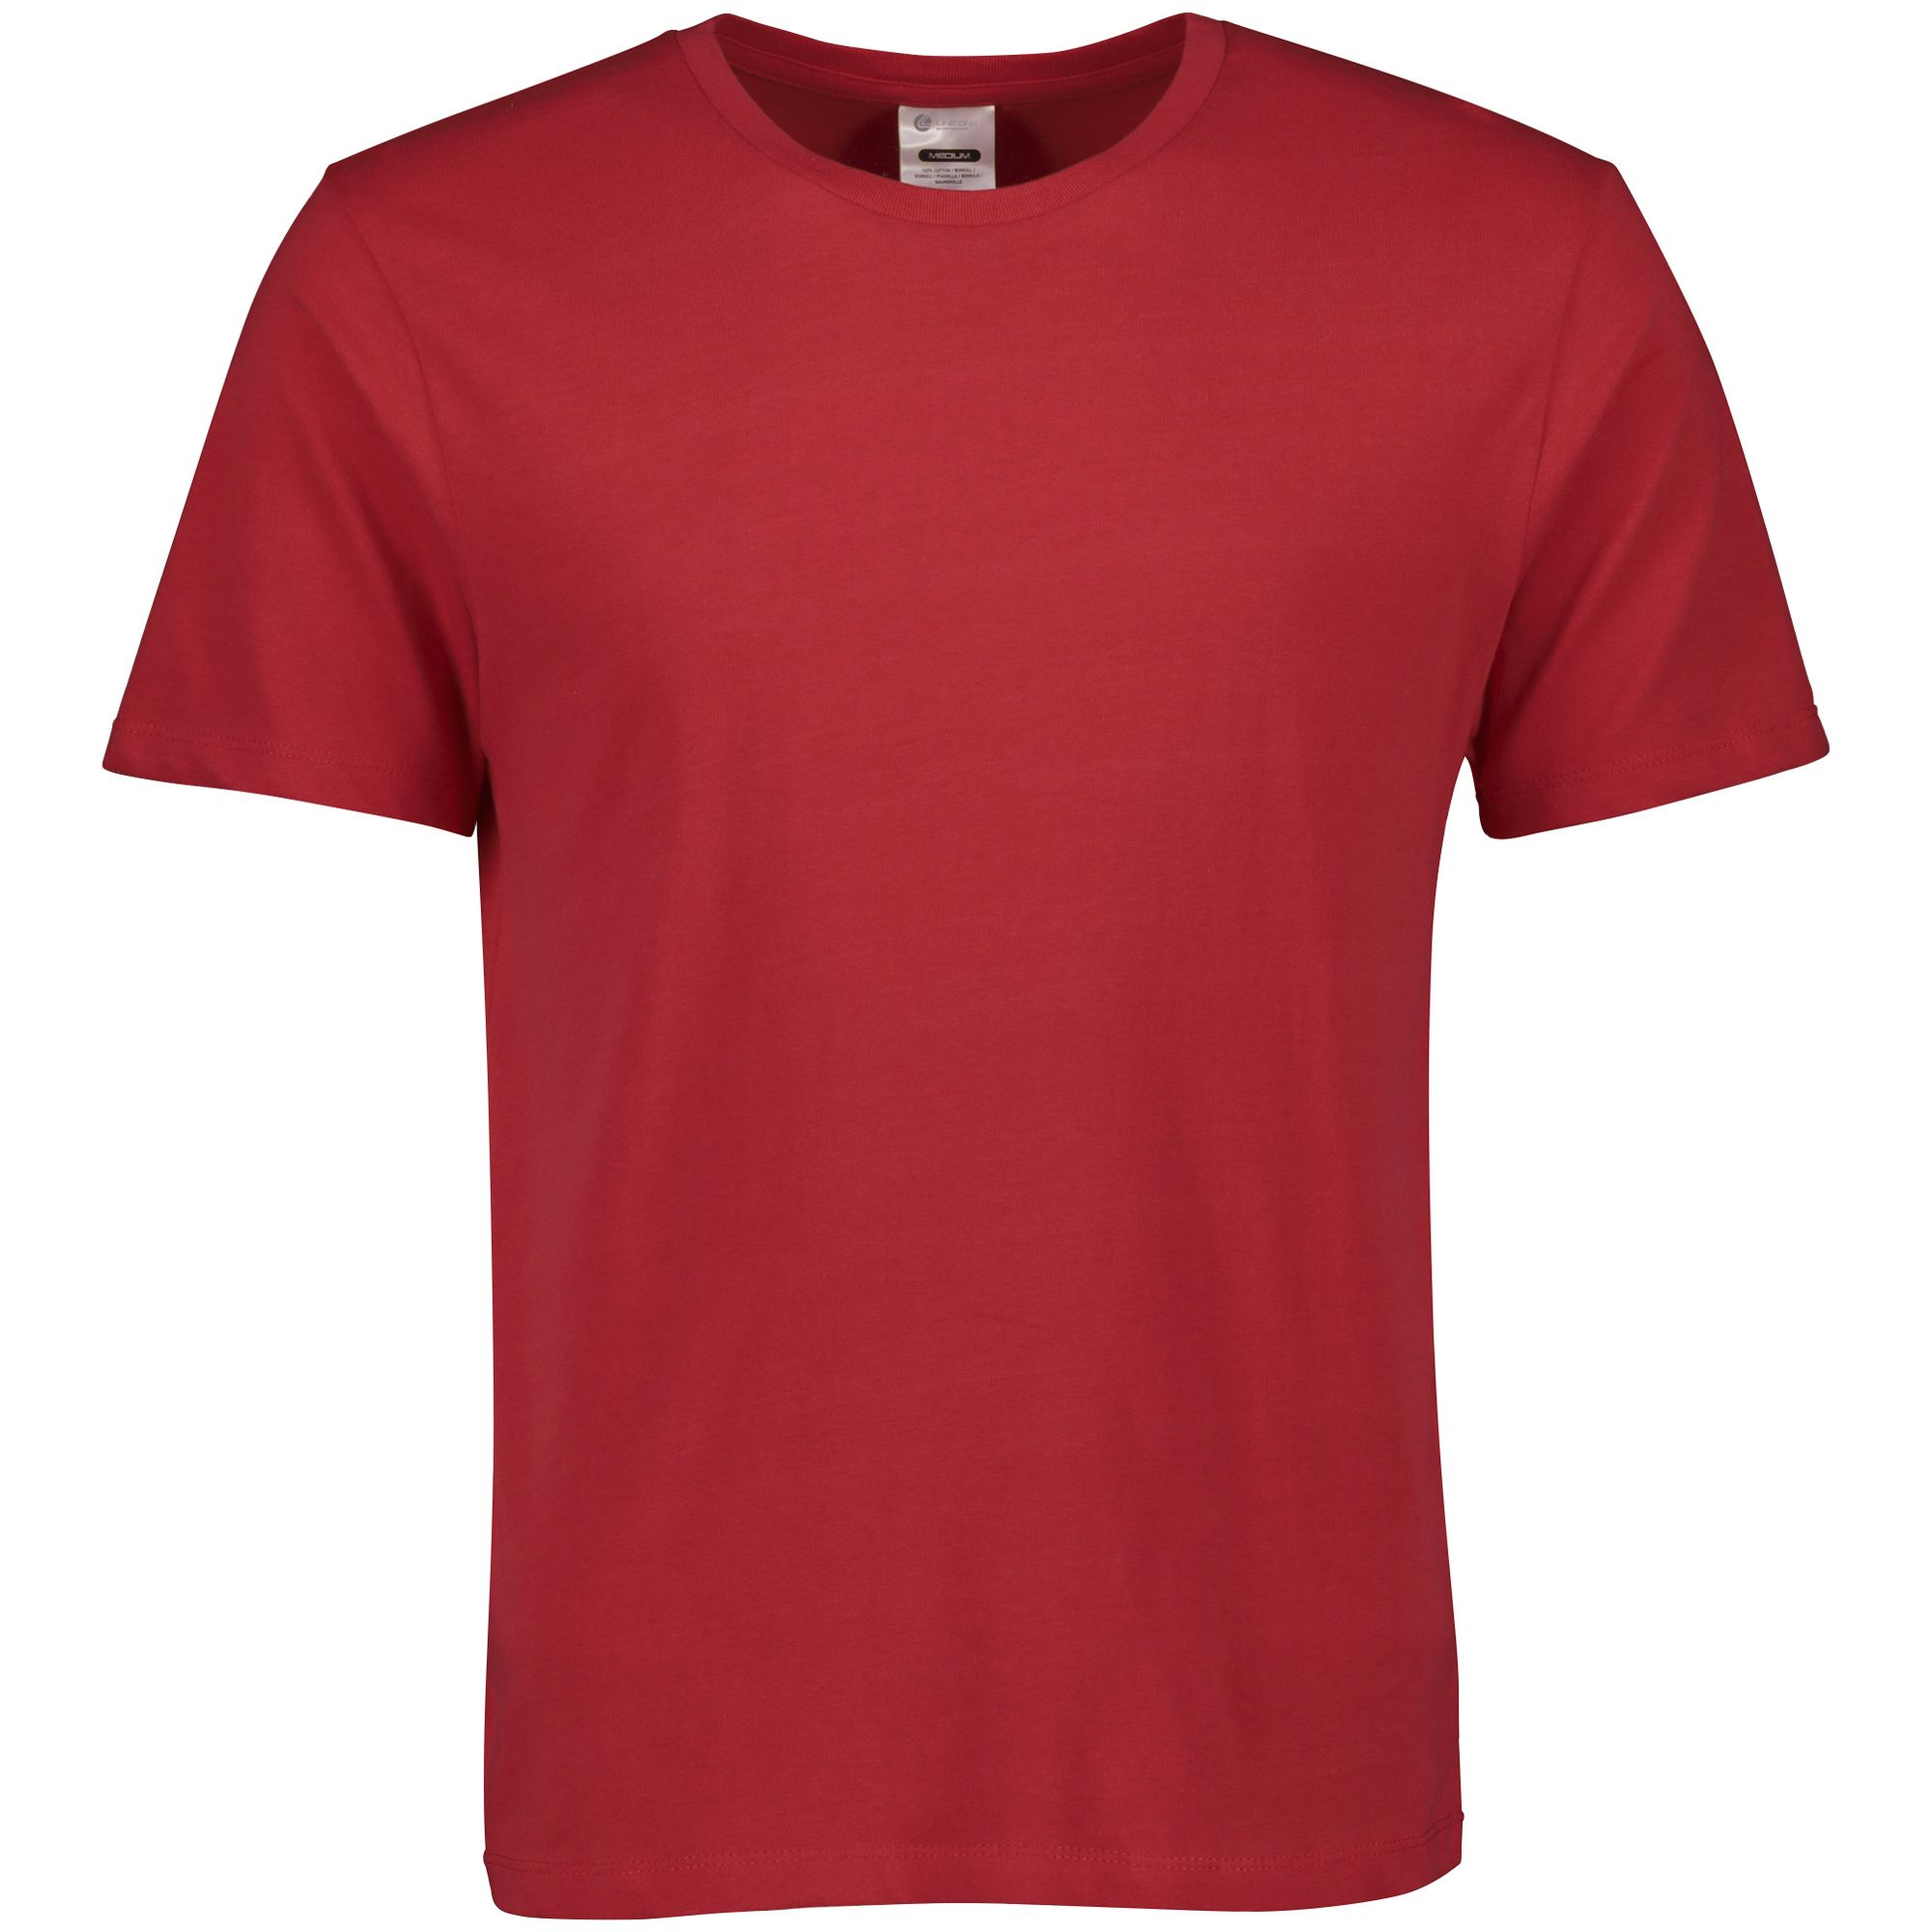 Basic Tee Usx CHINESE RED